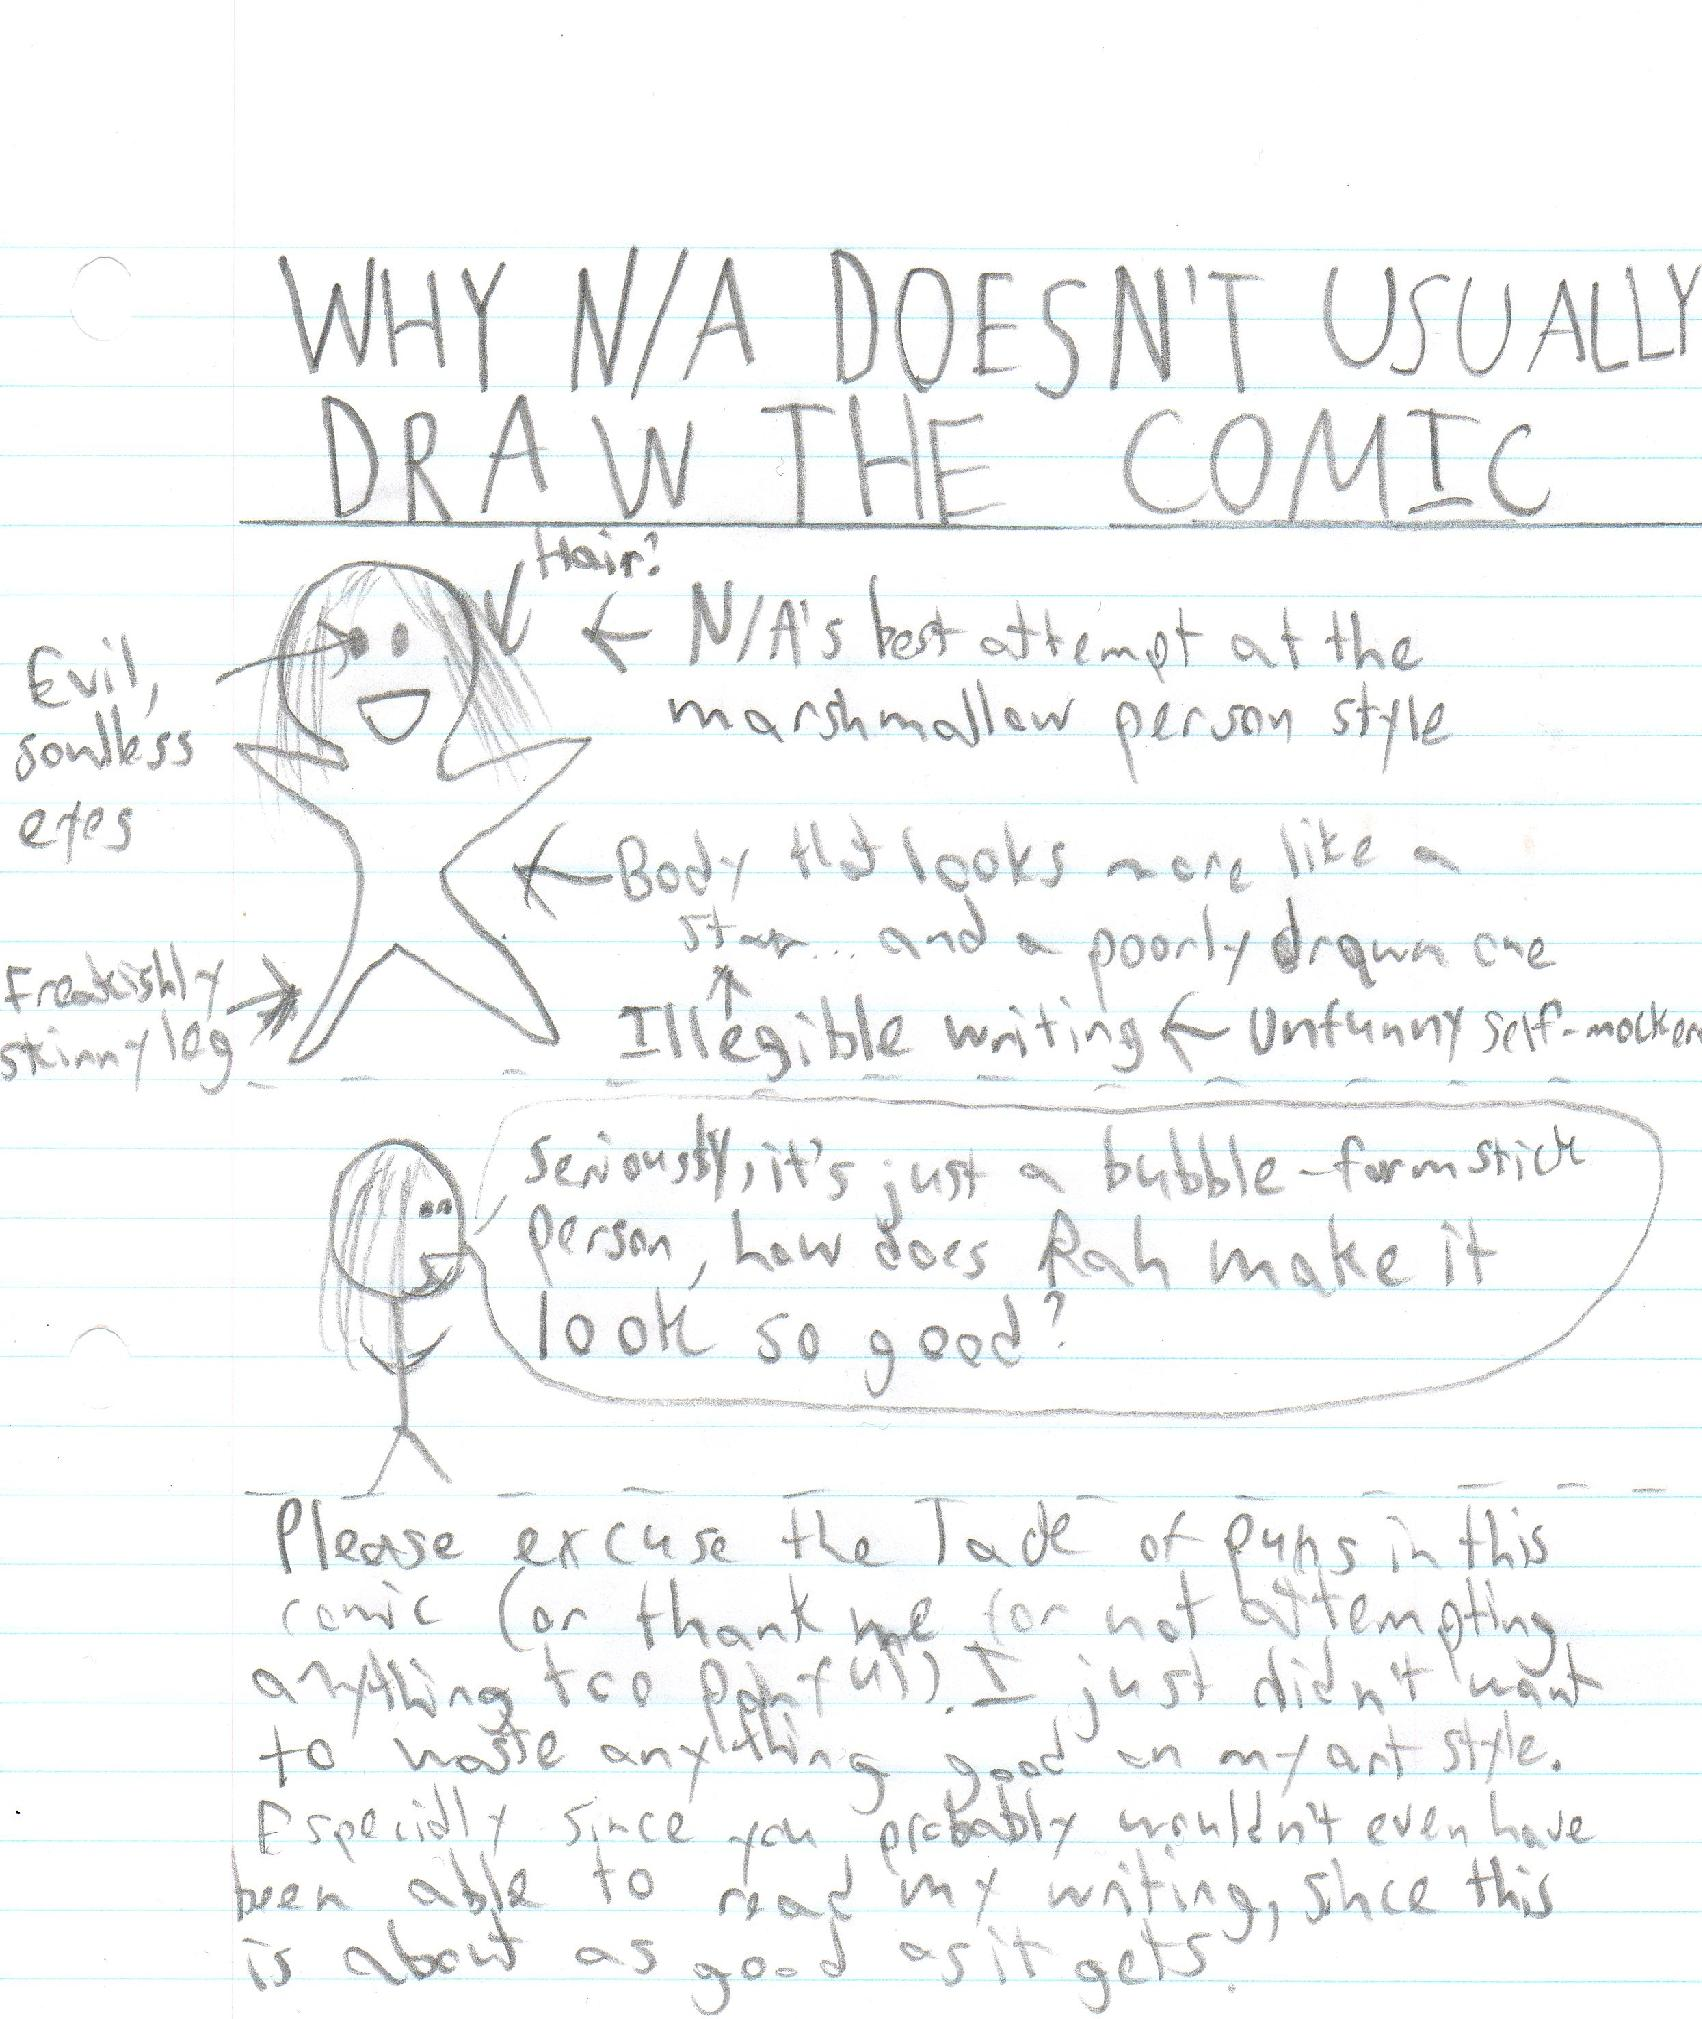 Why N/A Doesn't Usually Draw The Comic